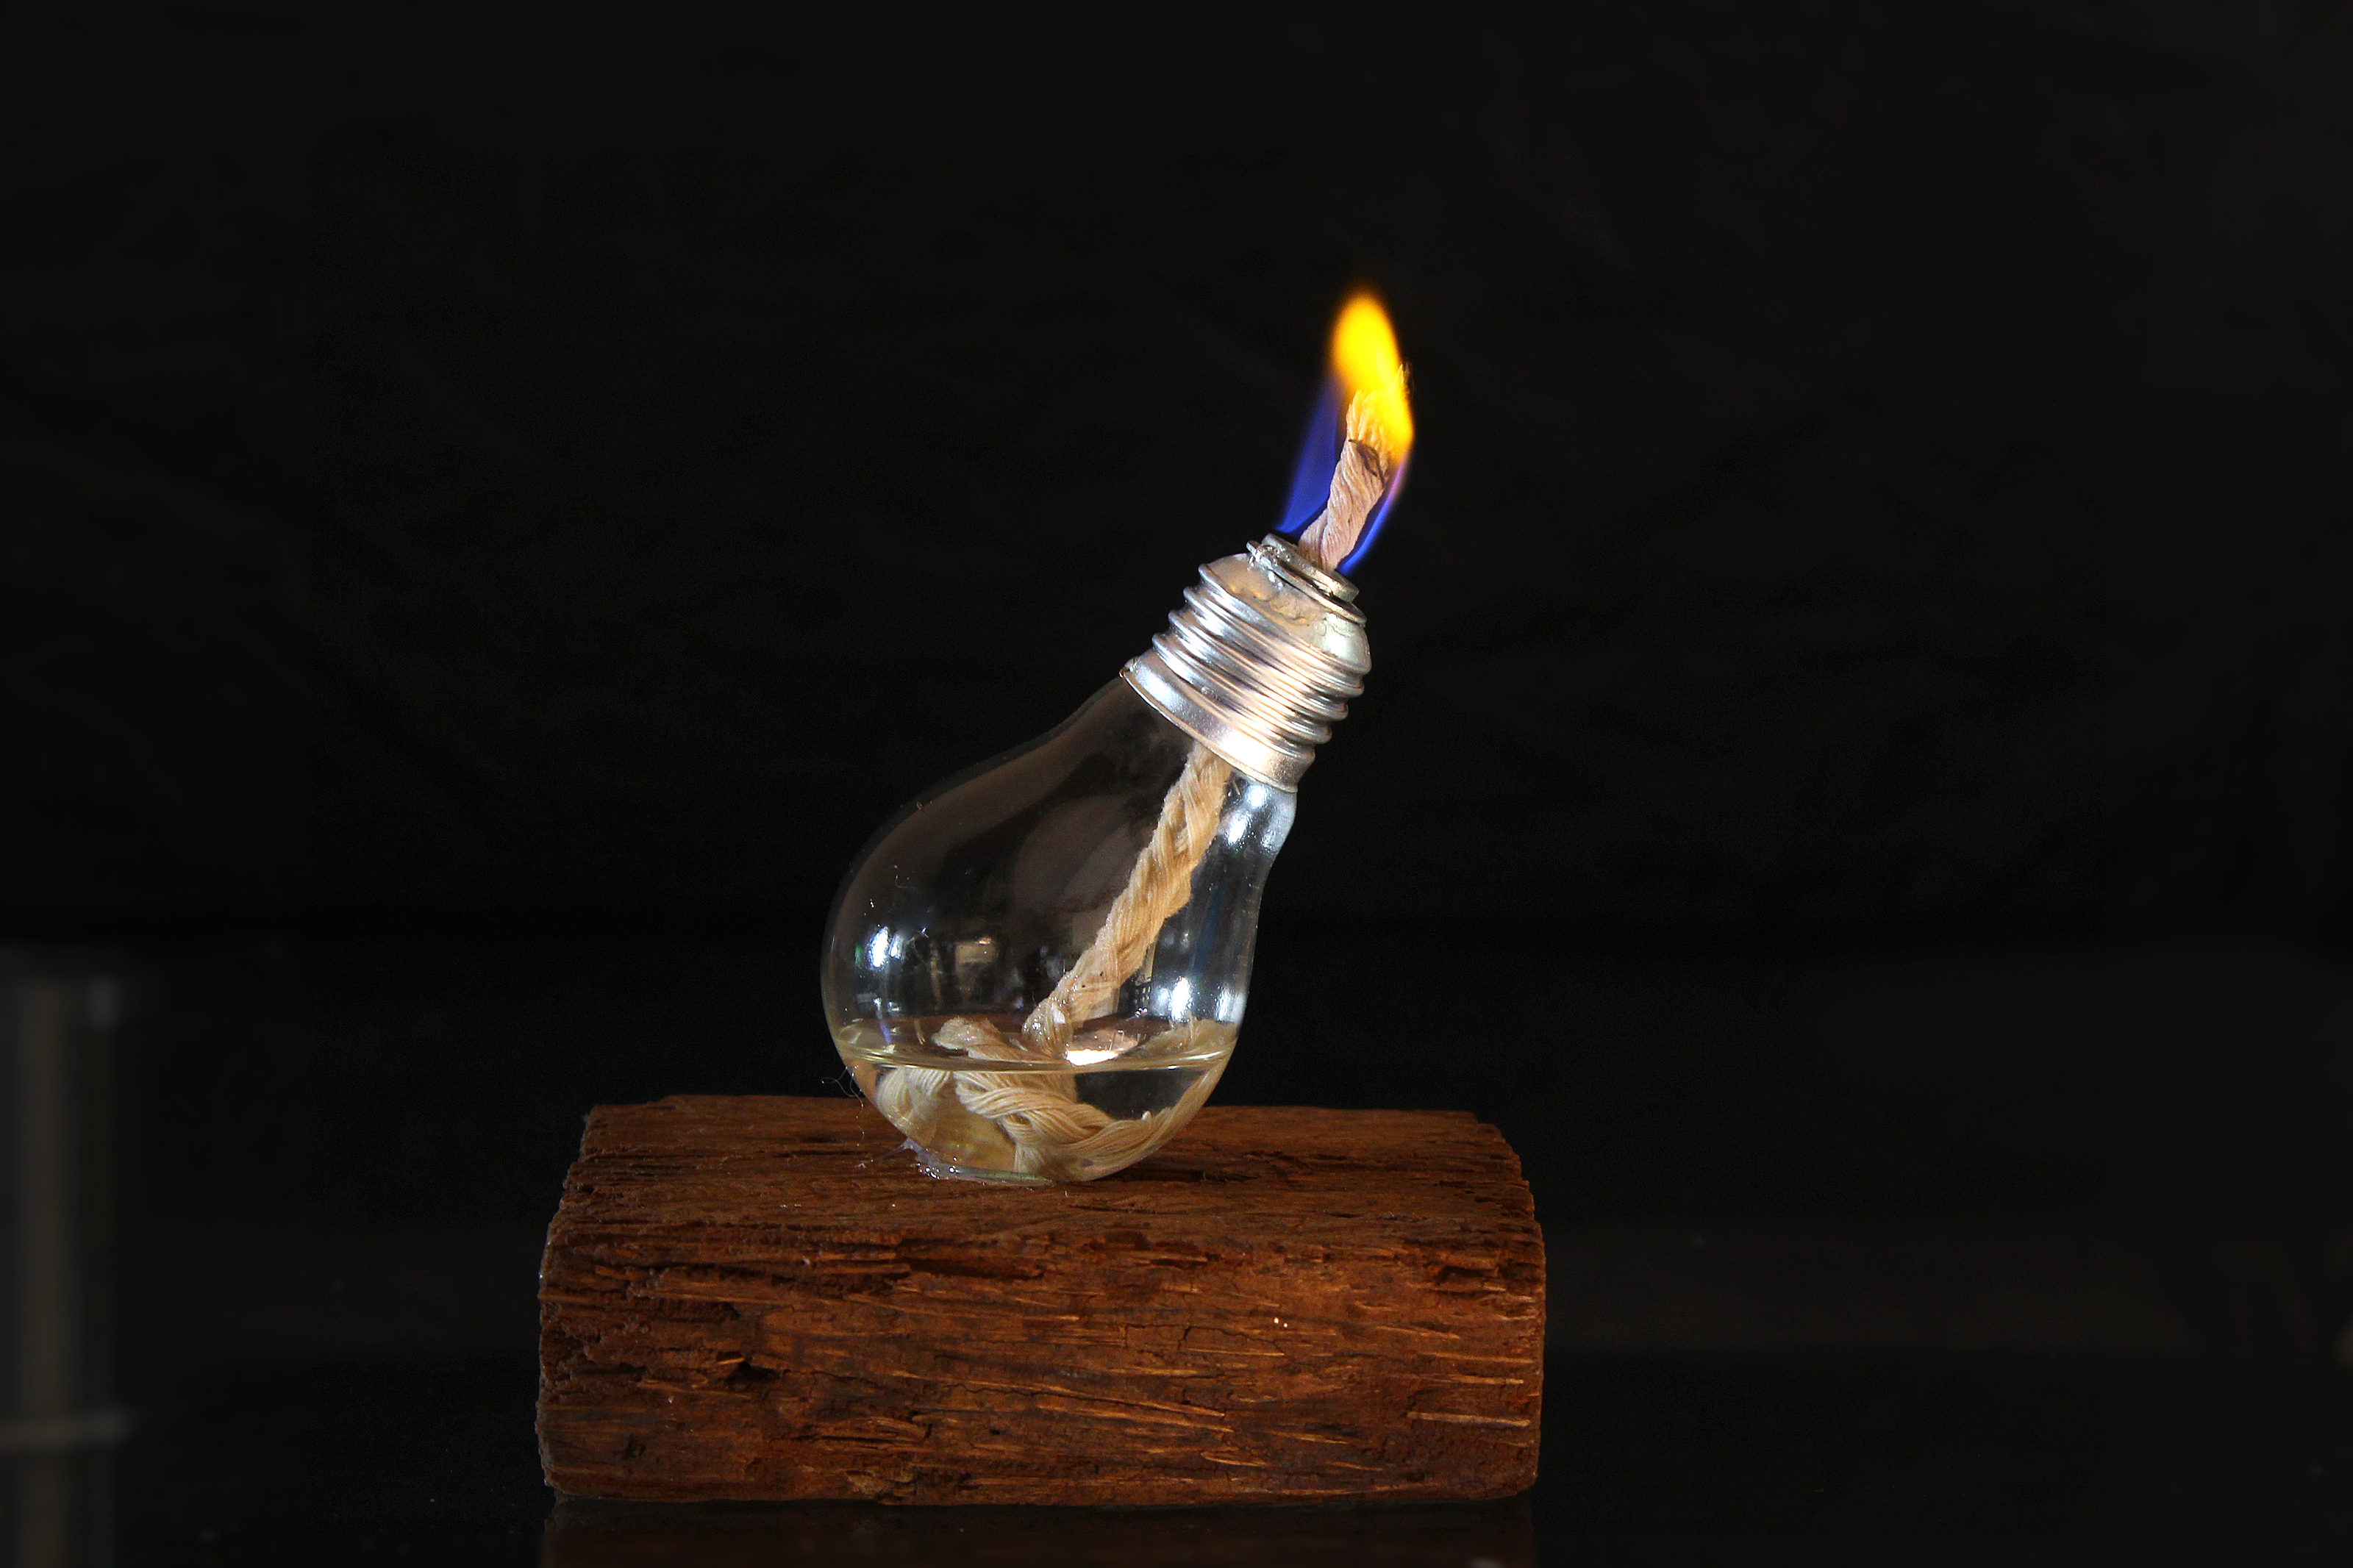 How To Make A Nightlight How To Make A Light Bulb Oil Lamp With Pictures Wikihow